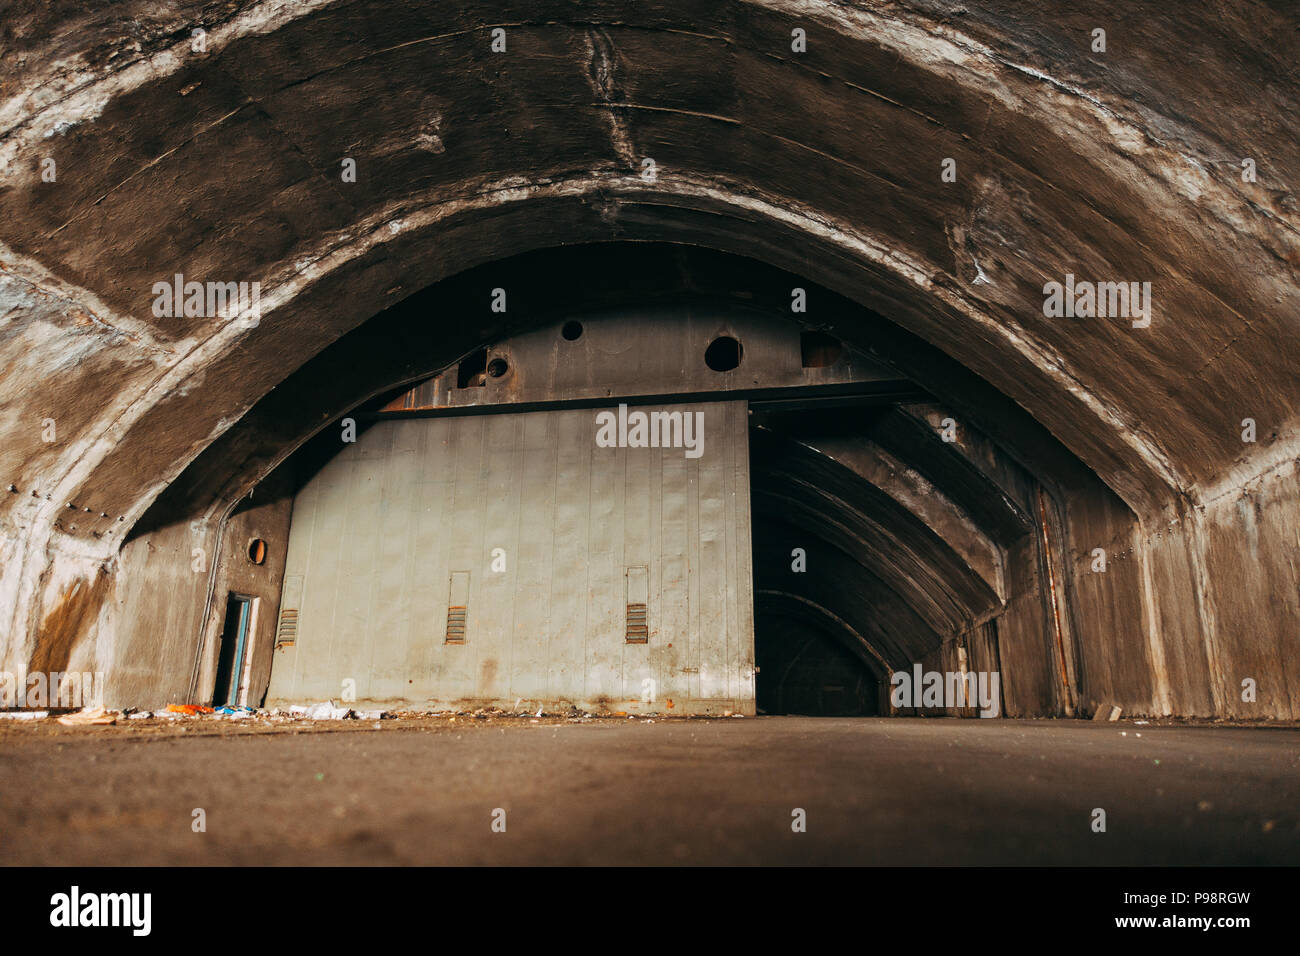 an abandoned aircraft hangar in the mountainside at Mostar Airport, Bosnia and Herzegovina Stock Photo